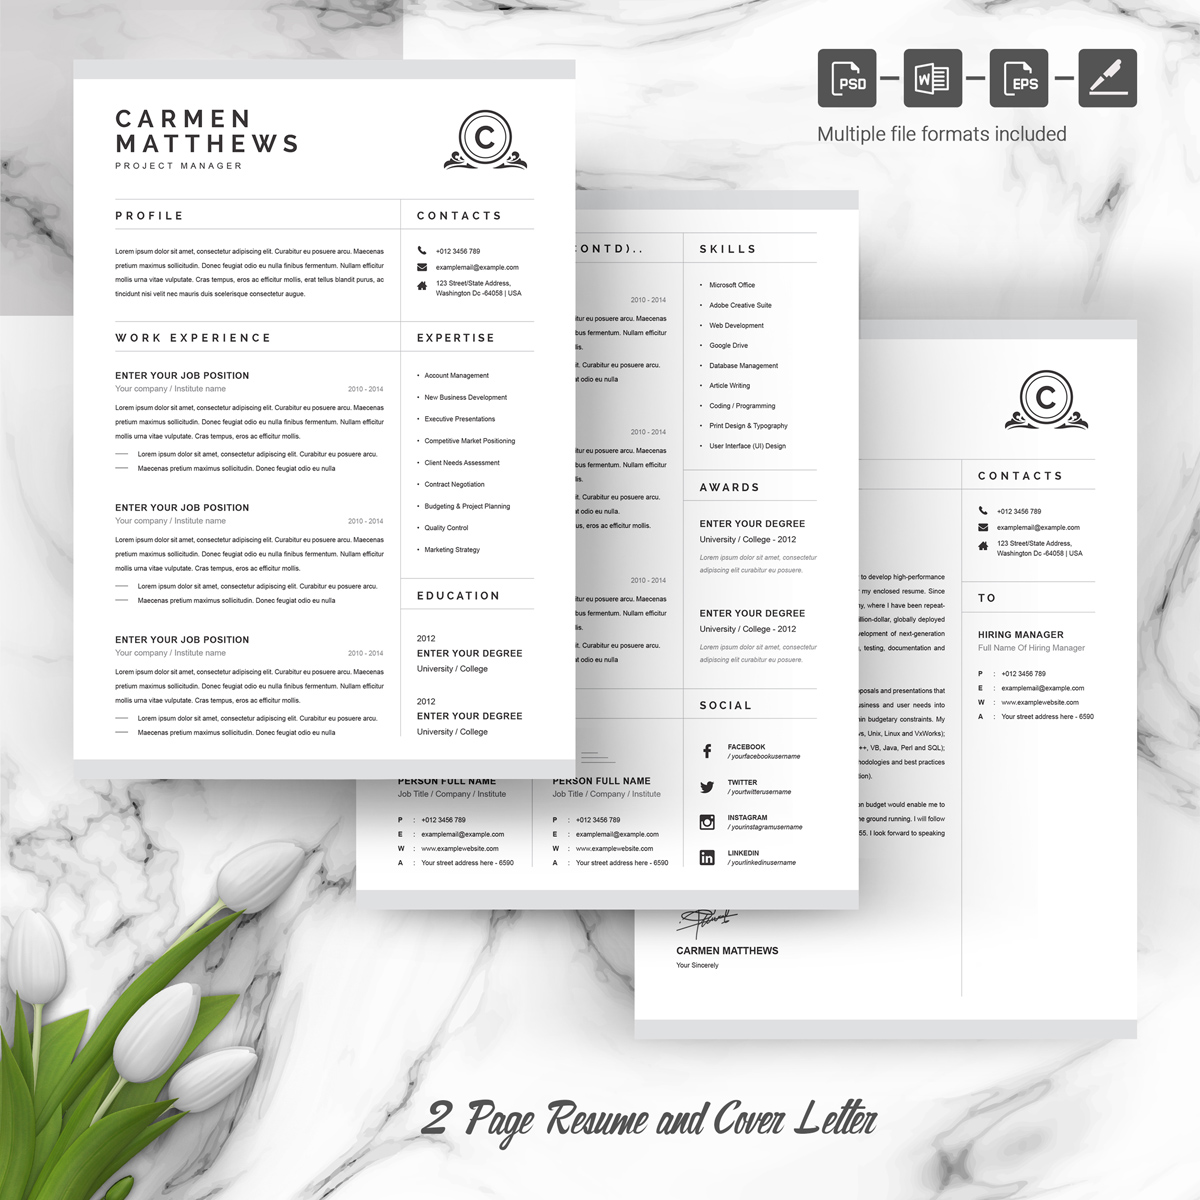 https://s3u.tmimgcdn.com/1860567-1580626792767_04_3-Pages-Free-Resume-Design-Template.jpg